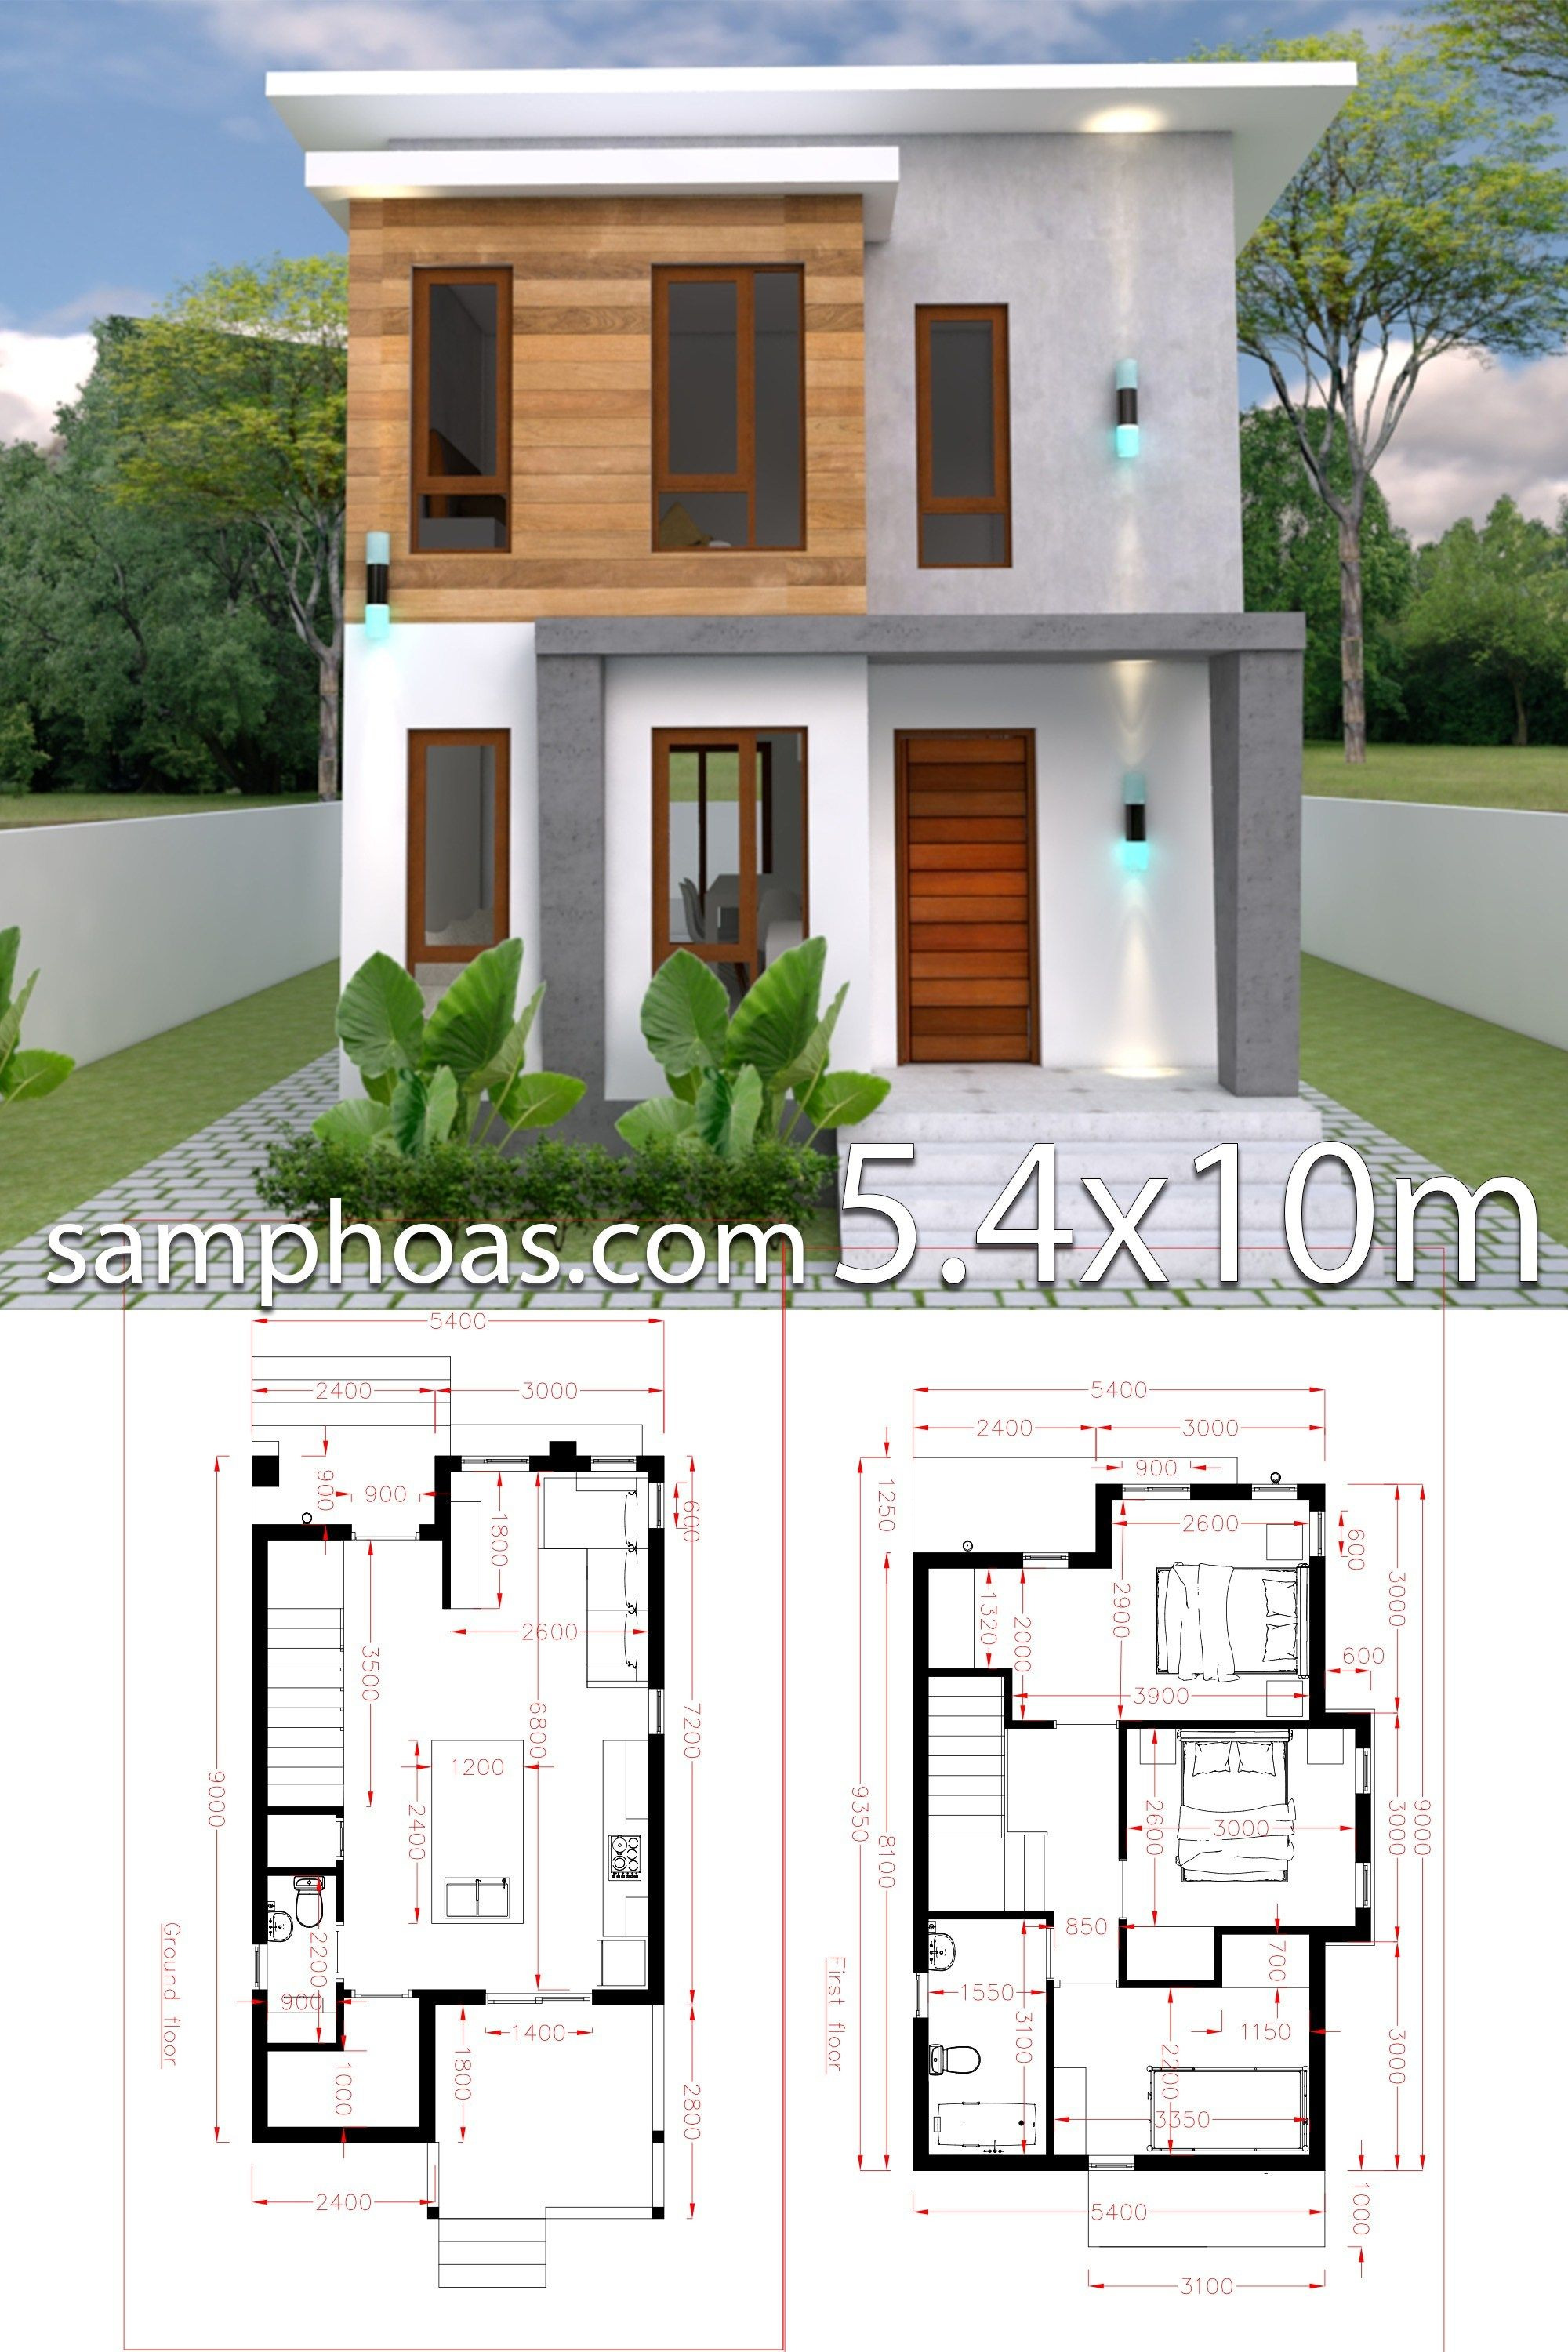 3 Bedroom Home Plans Fresh Small Home Design Plan 5 4x10m with 3 Bedroom